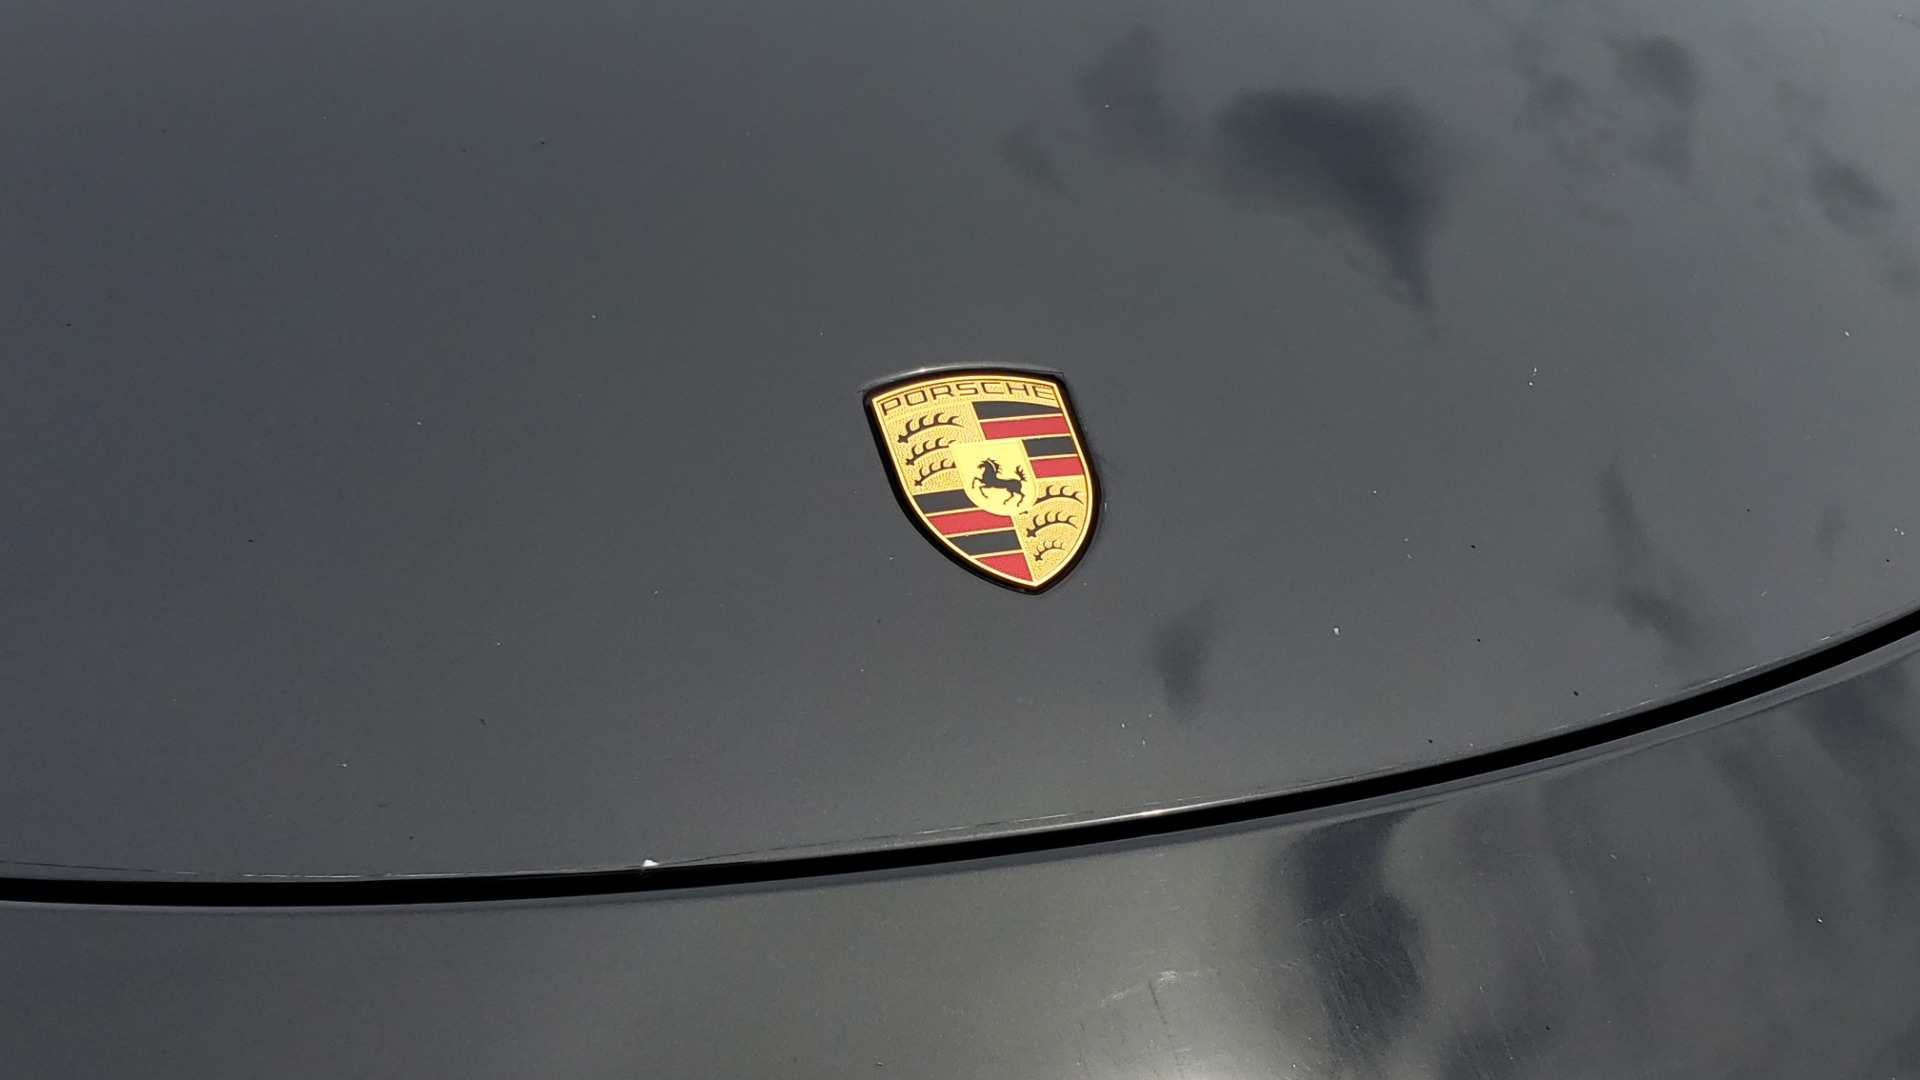 Used 2014 Porsche 911 CARRERA 4S / AWD / 3.8L / PDK / CHRONO / NAV / BOSE / SUNROOF for sale Sold at Formula Imports in Charlotte NC 28227 16